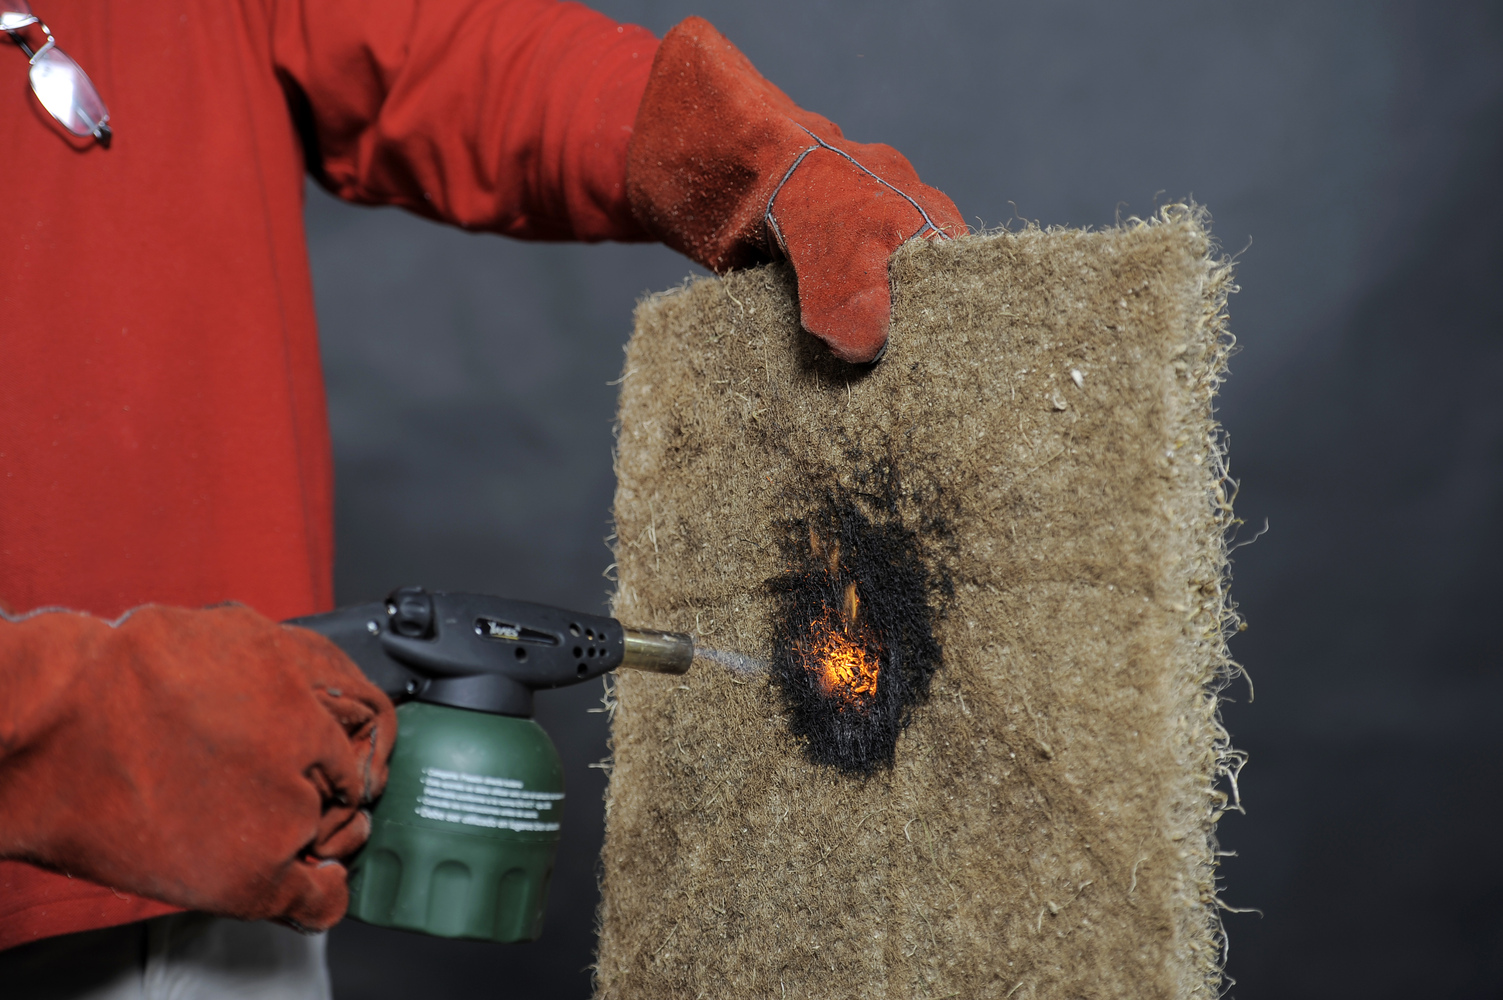 Eco friendly home insulation products - Eco Friendly Insulation Offers Thermal Performance Sound Absorption And Fire Resistance At The Same Time